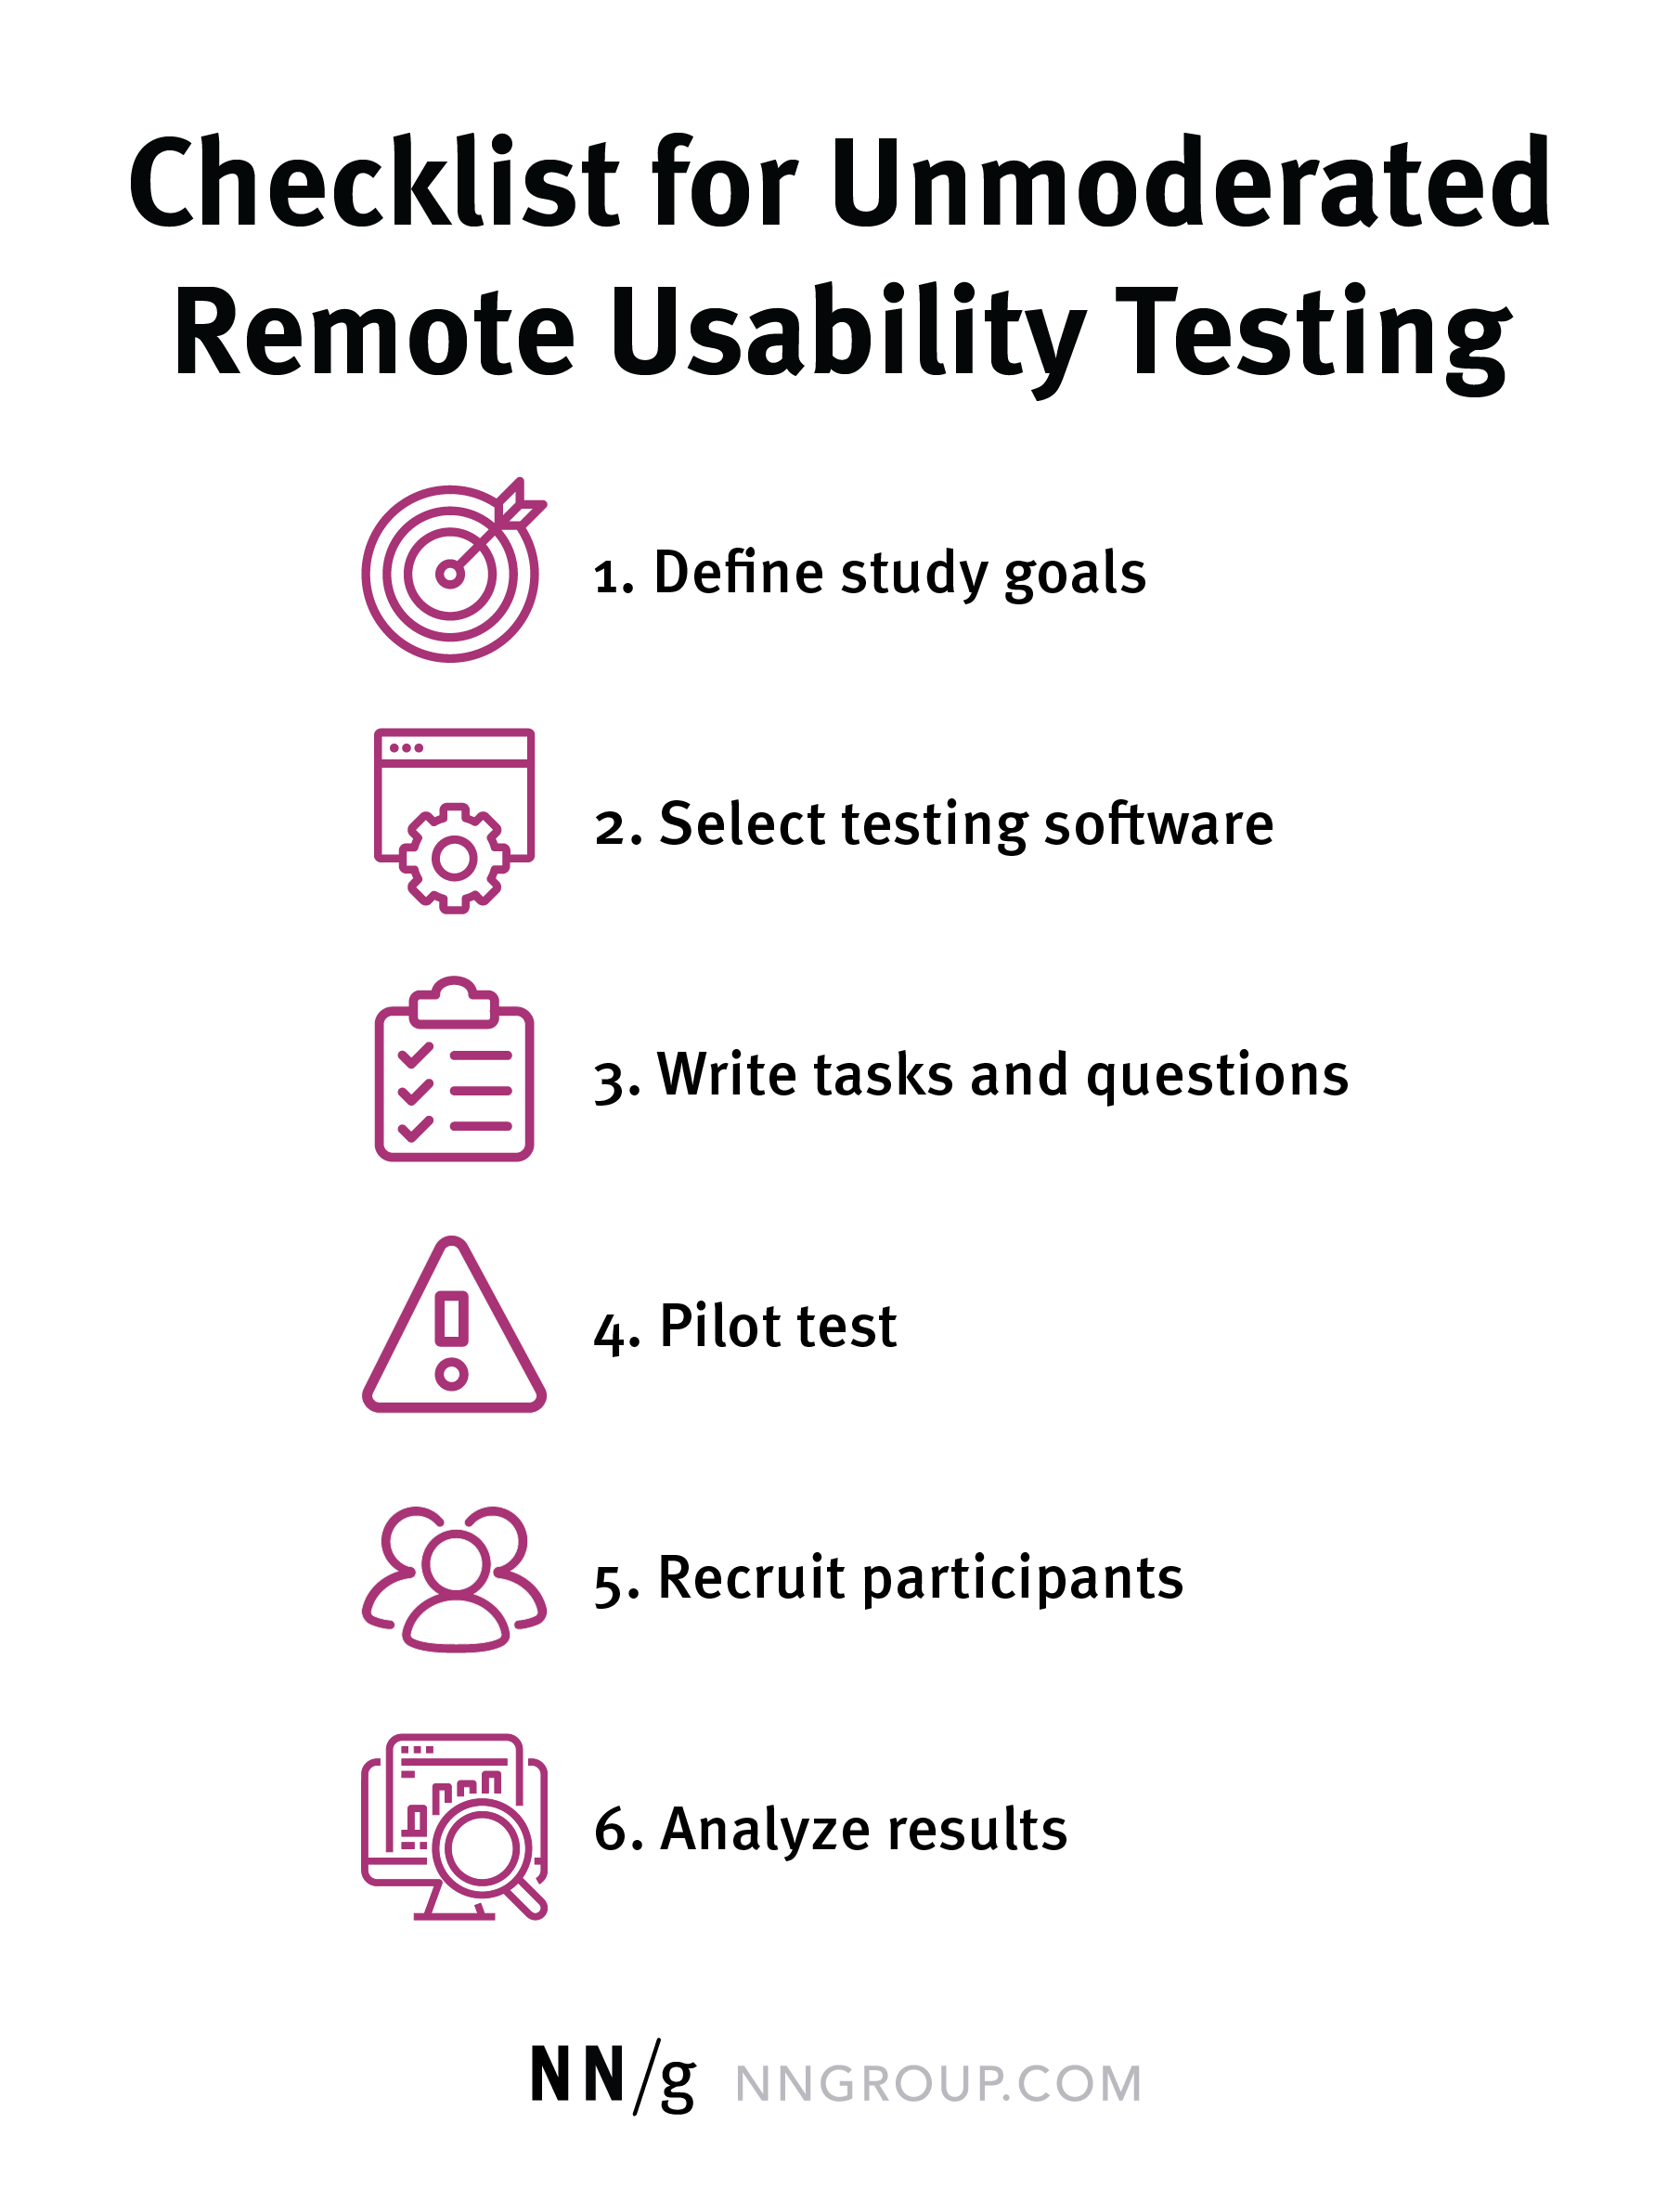 List of 6 steps for unmoderated user testing: Define study goals, Select testing software, Write tasks and questions,Pilot test, Recruit participants, and analyze results.